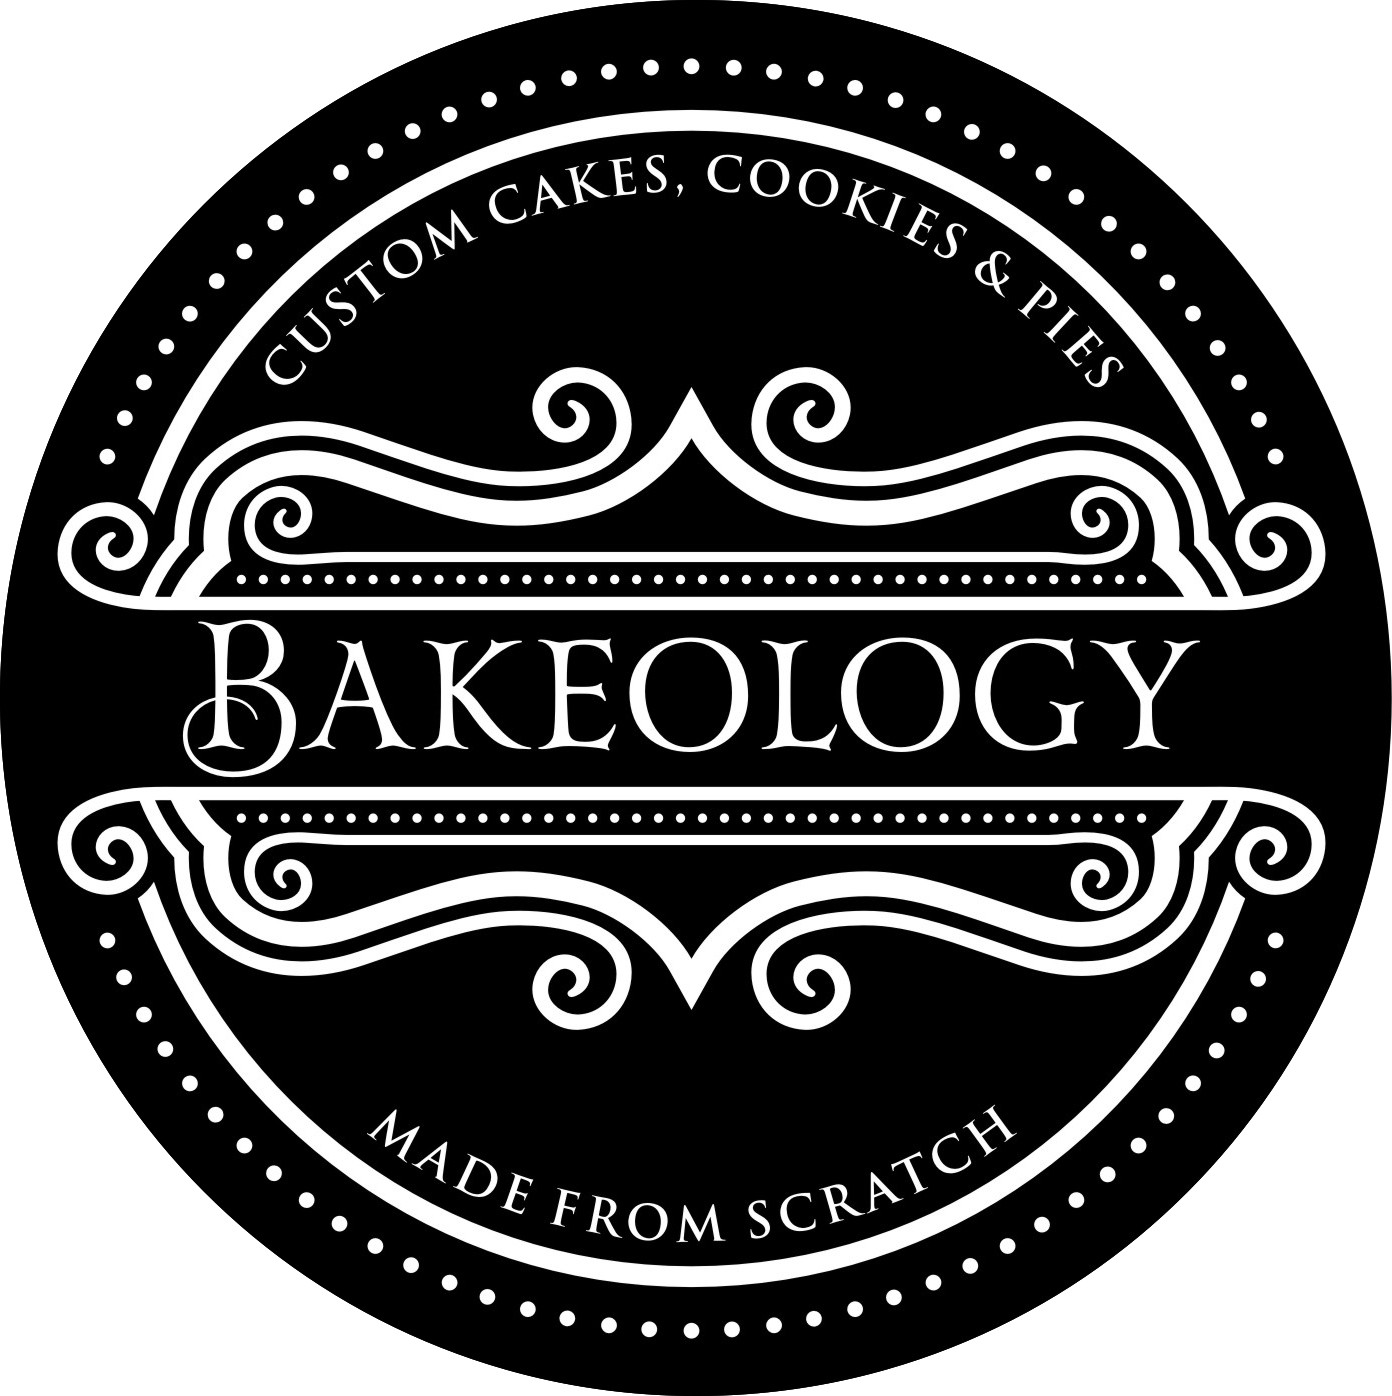 Welcome to Bakeologydfw!